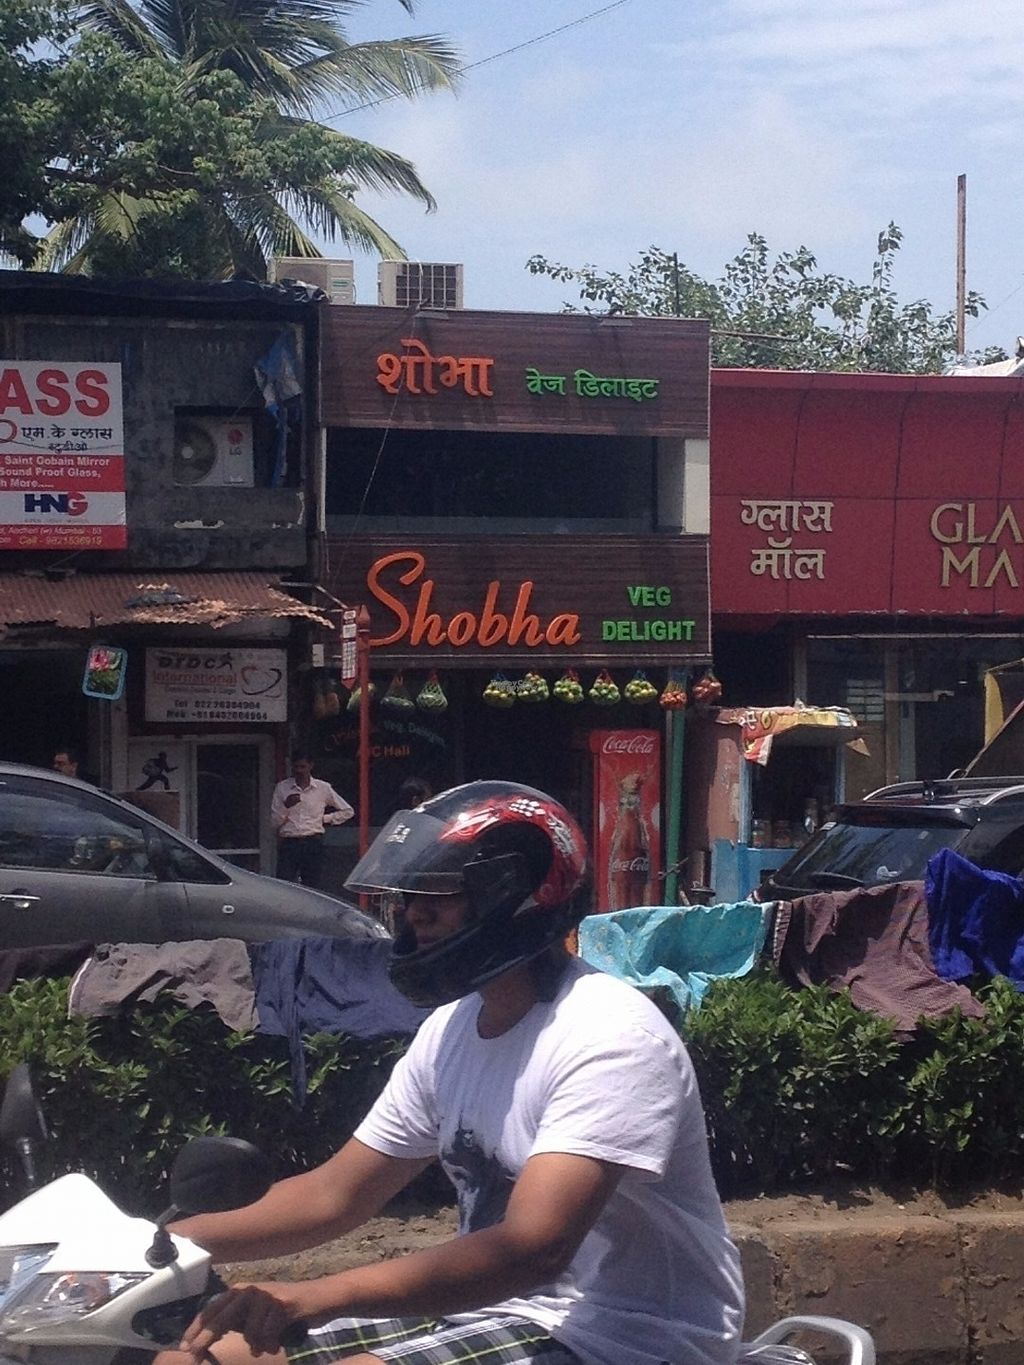 """Photo of Shobha Veg Delight  by <a href=""""/members/profile/vegan_ryan"""">vegan_ryan</a> <br/>View from the street <br/> September 9, 2016  - <a href='/contact/abuse/image/79871/174640'>Report</a>"""